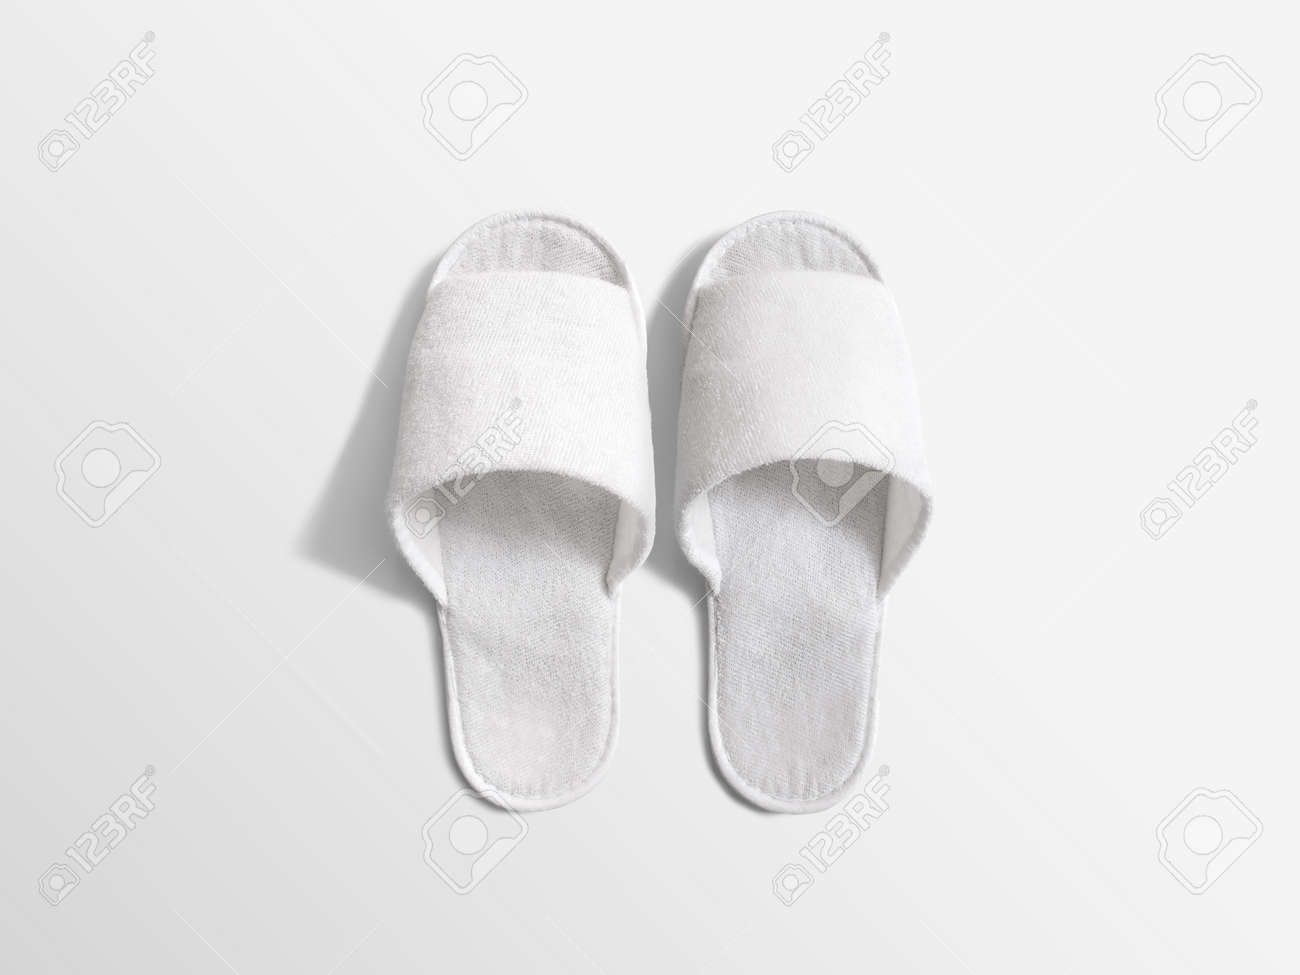 Pair Of Blank White Home Slippers